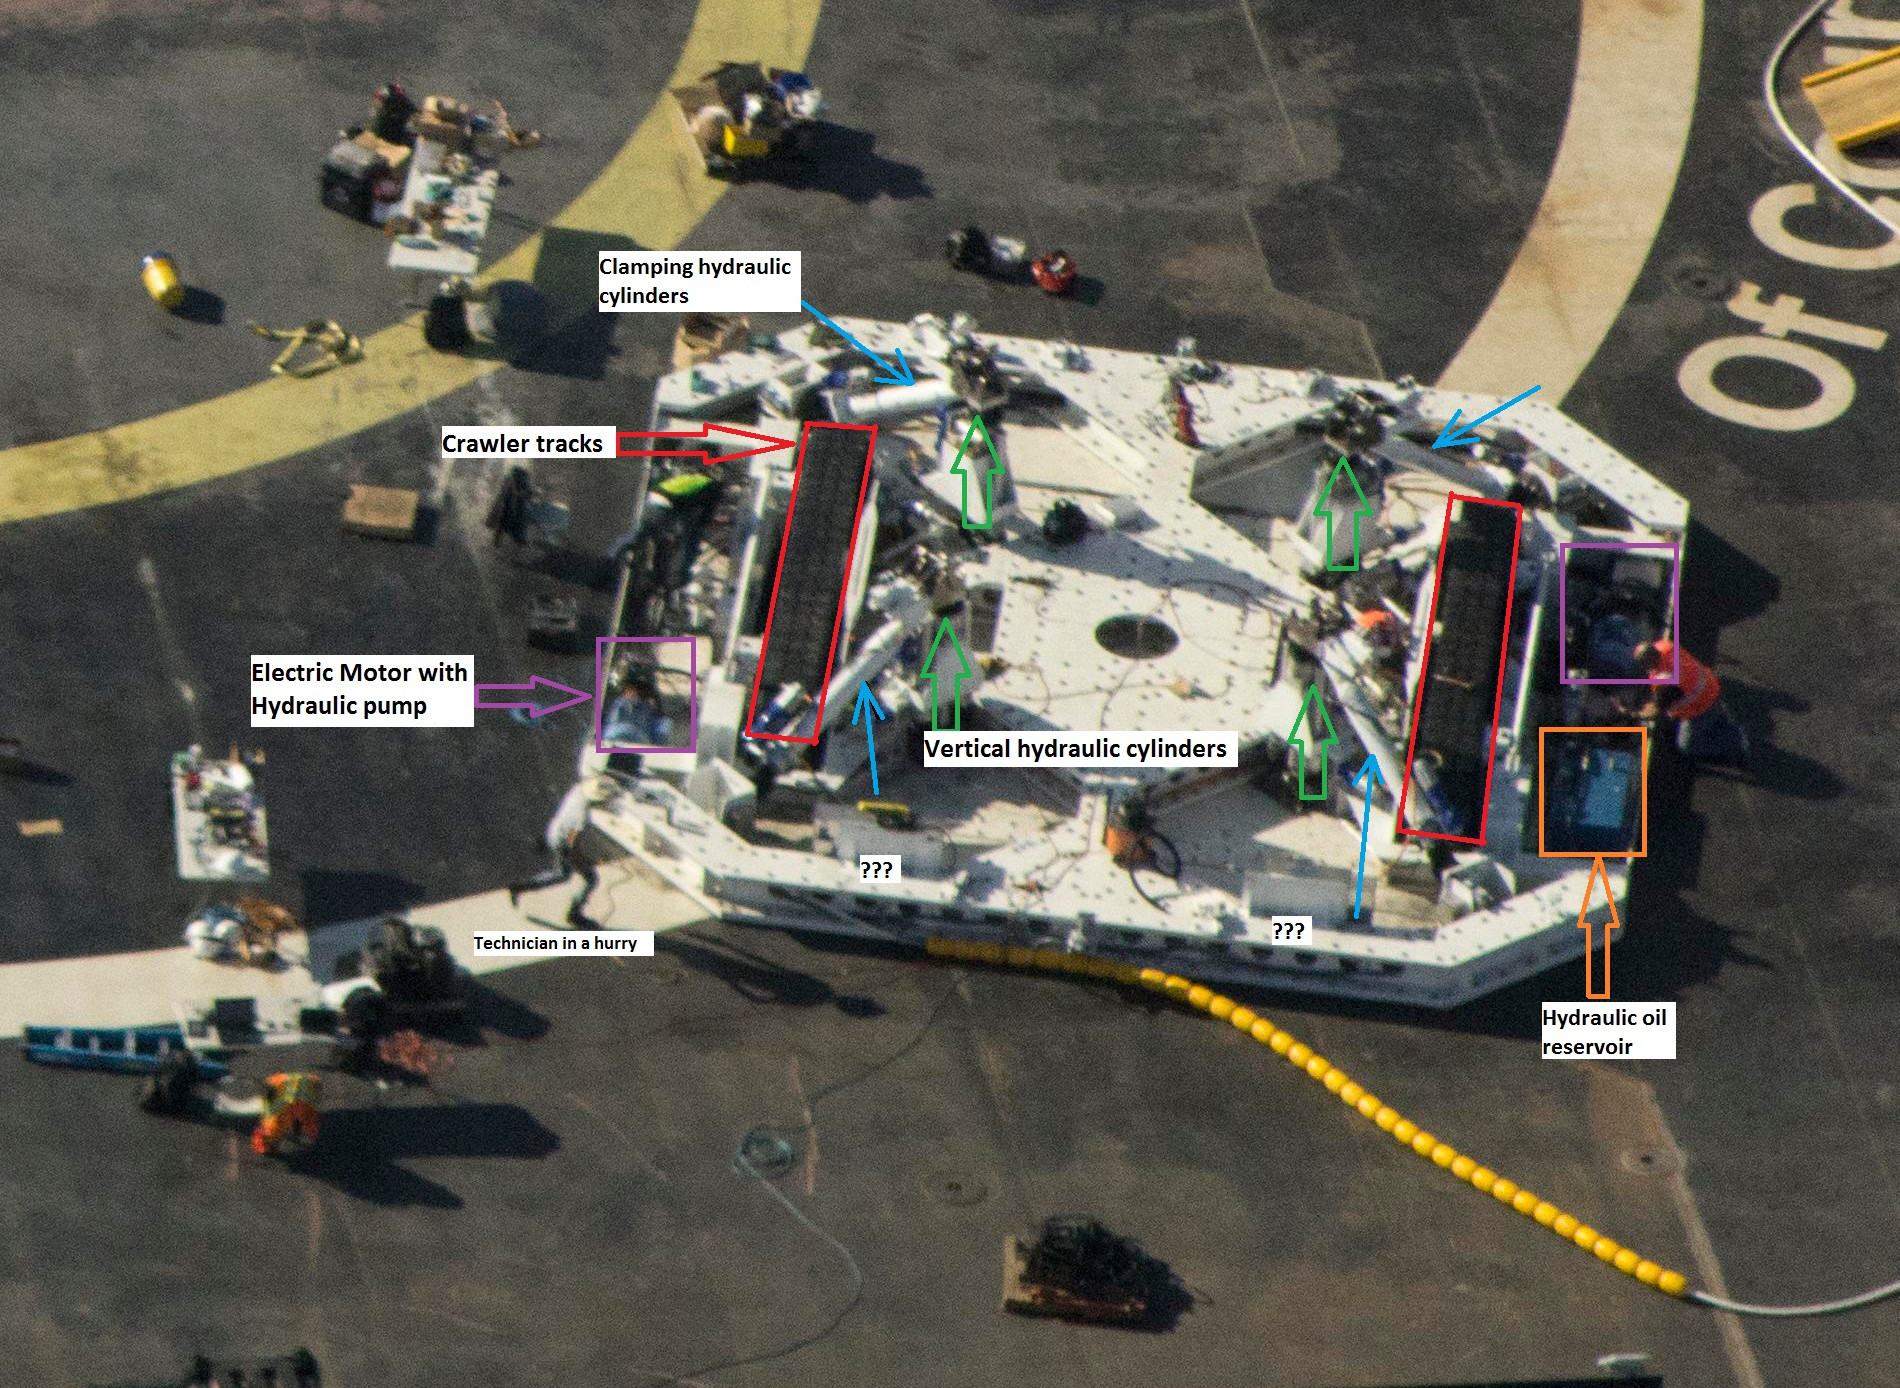 SpaceX-OCISLY-droneship-robot-annotated